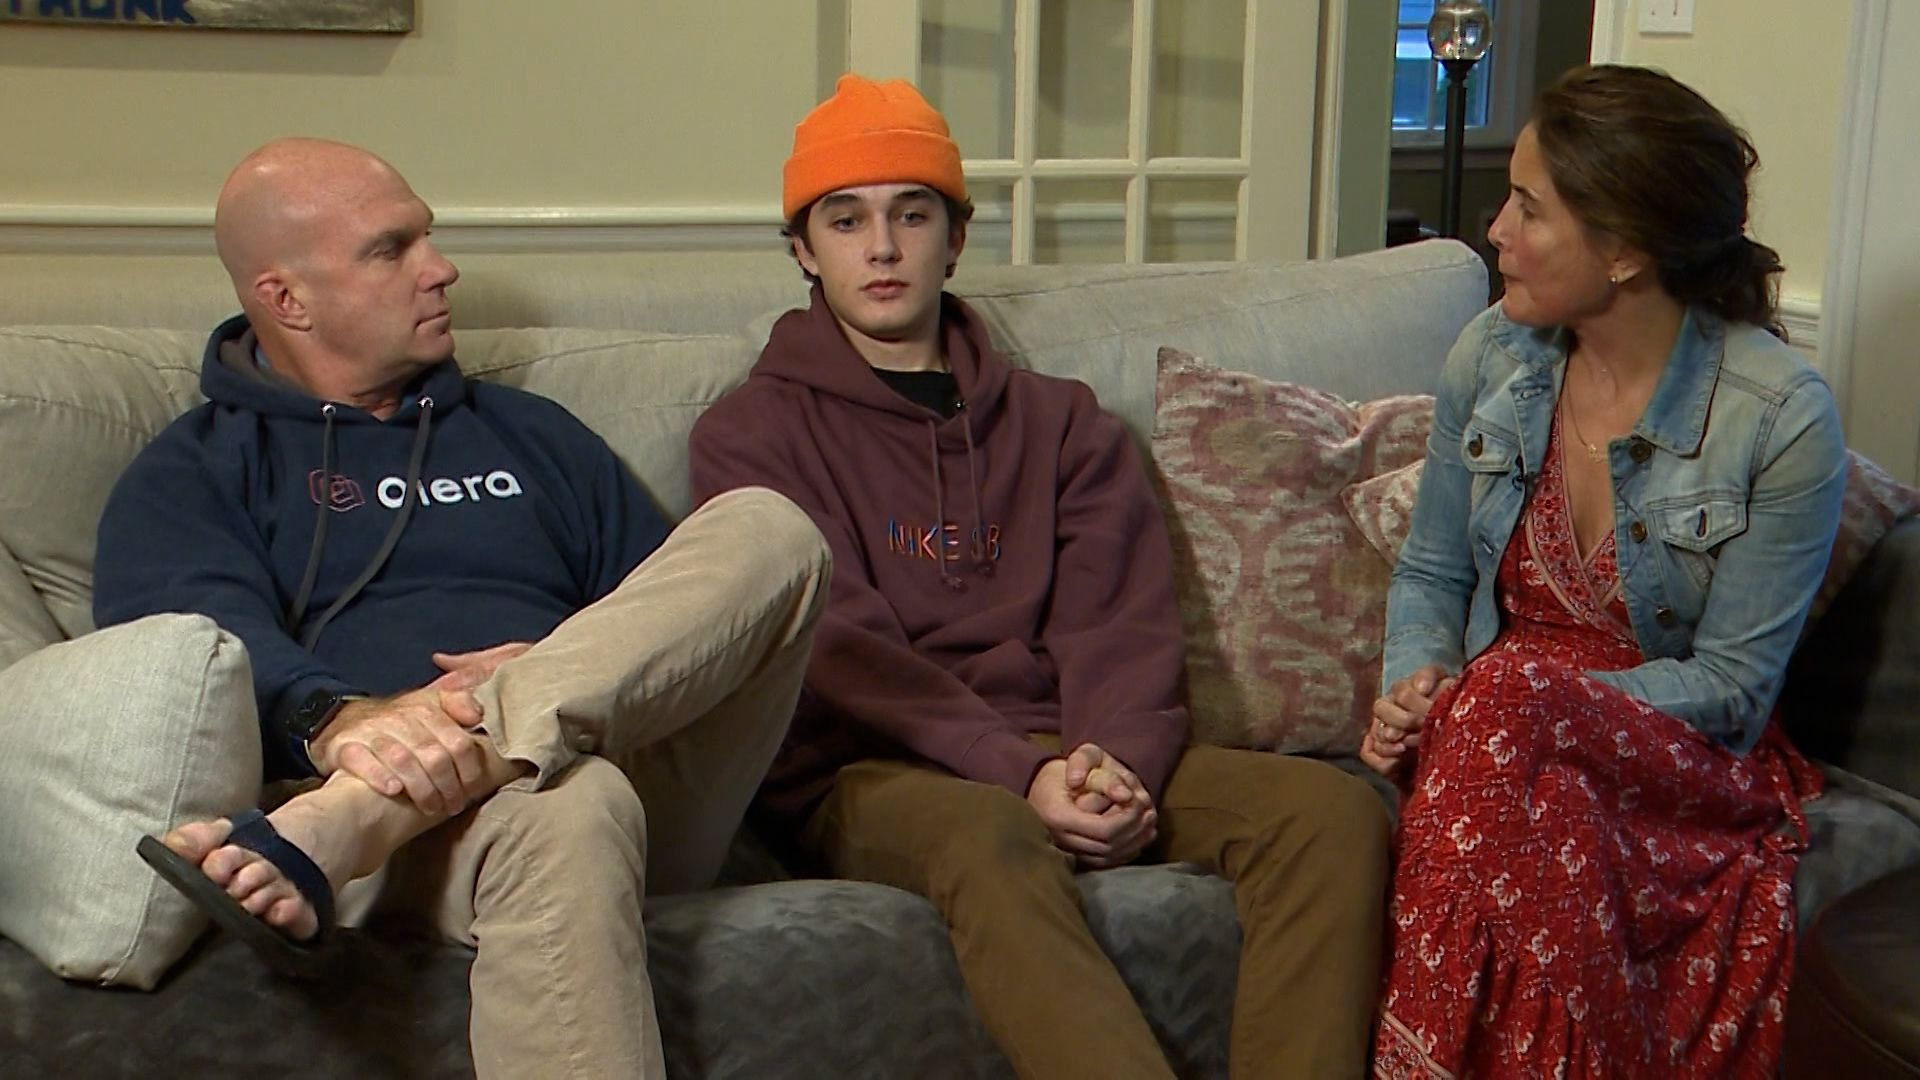 'I think about it every day': Wellesley teen says he was viciously bullied, beaten by classmates